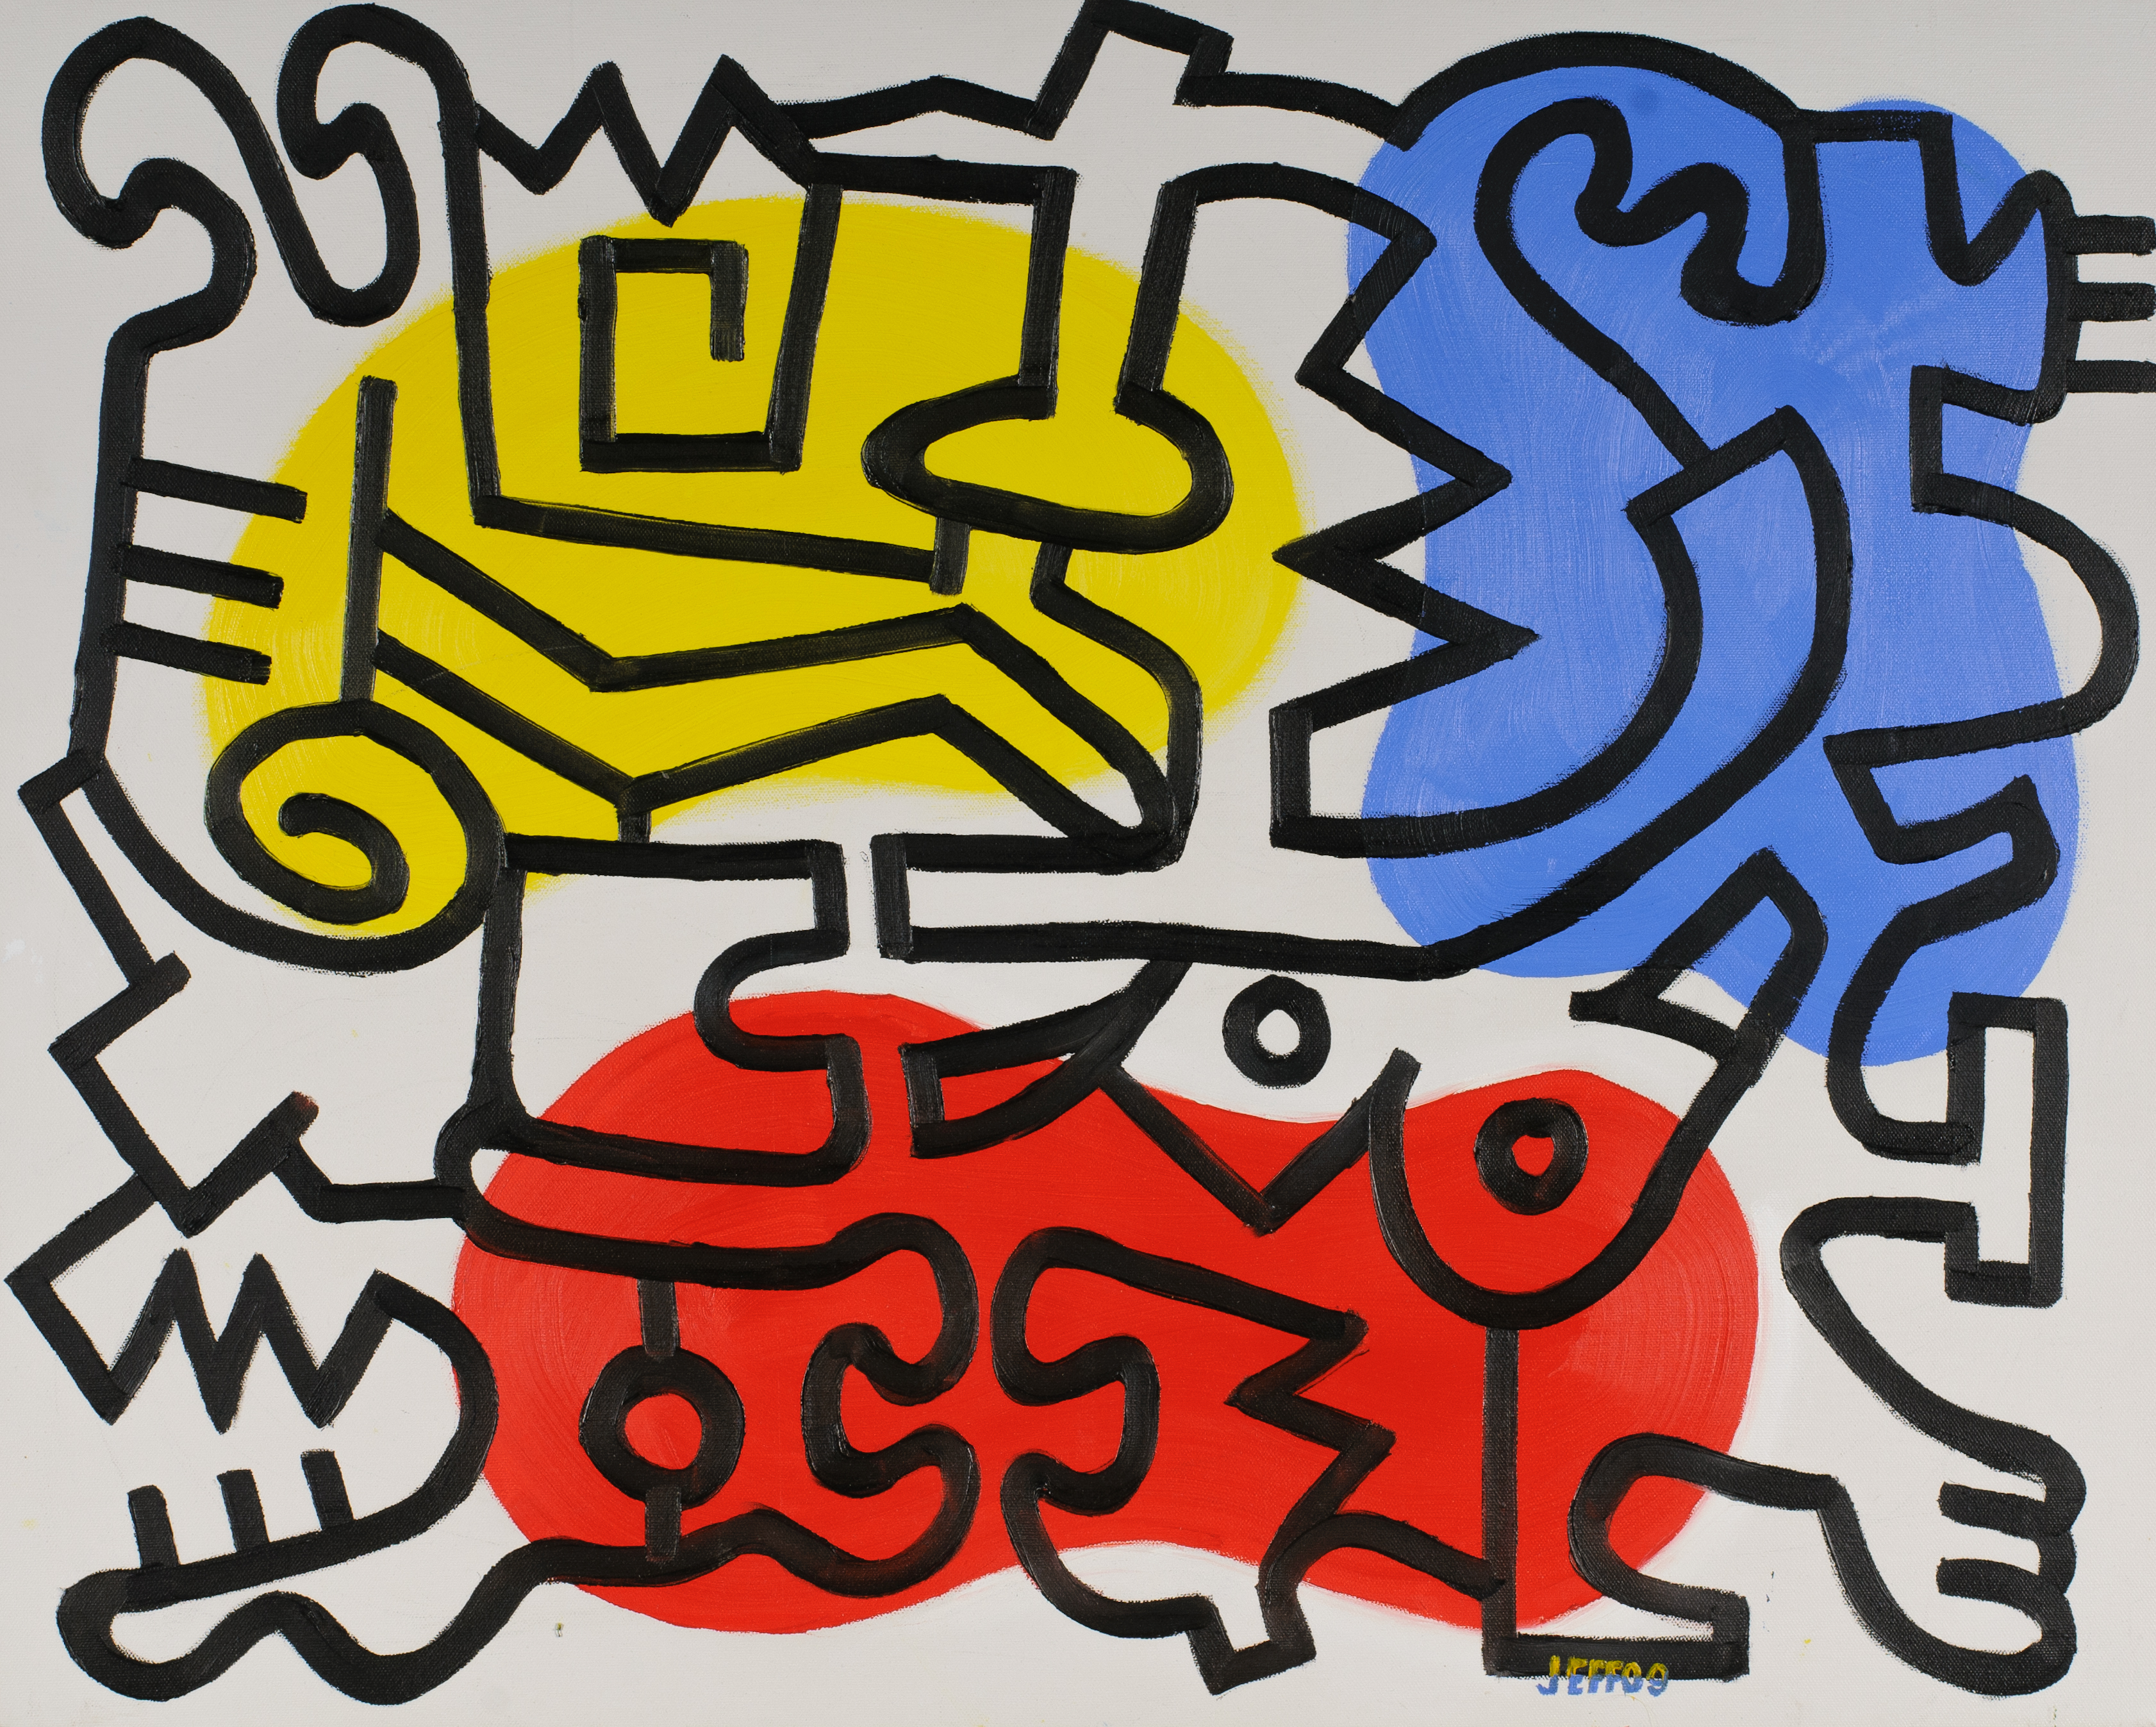 Leger and Haring